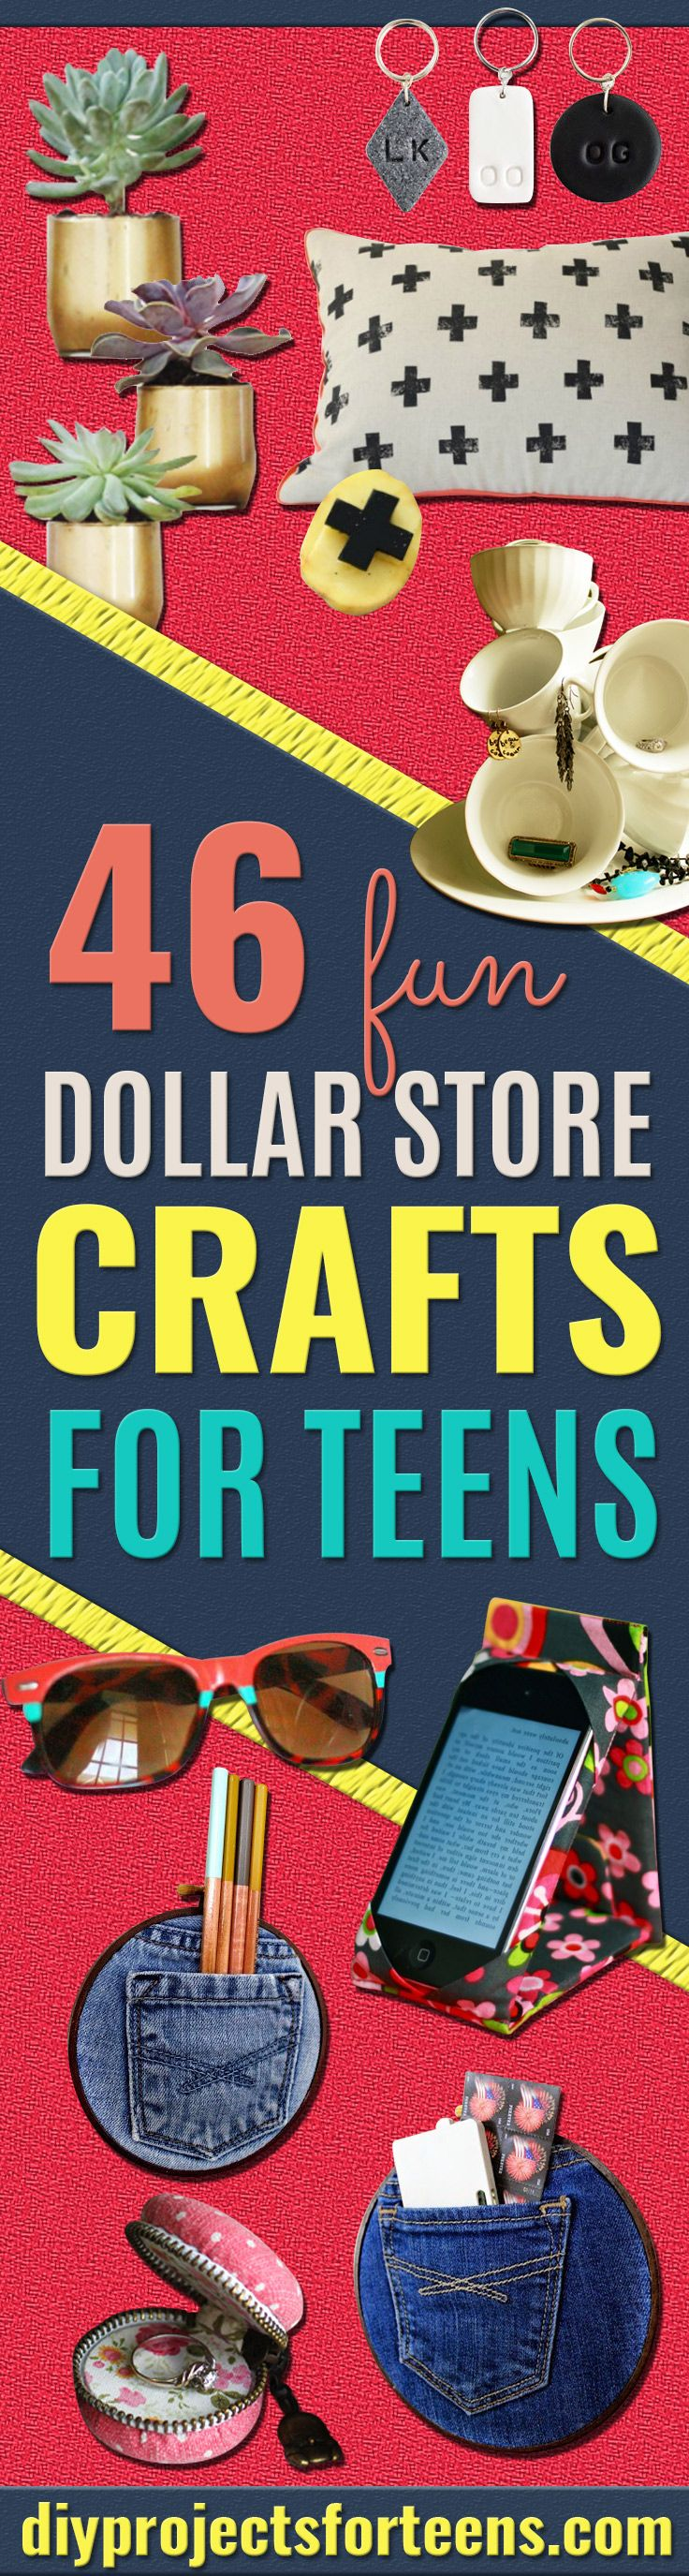 162 best diy projects for teens images on pinterest teen crafts fun dollar store crafts for teens mitanshu Choice Image